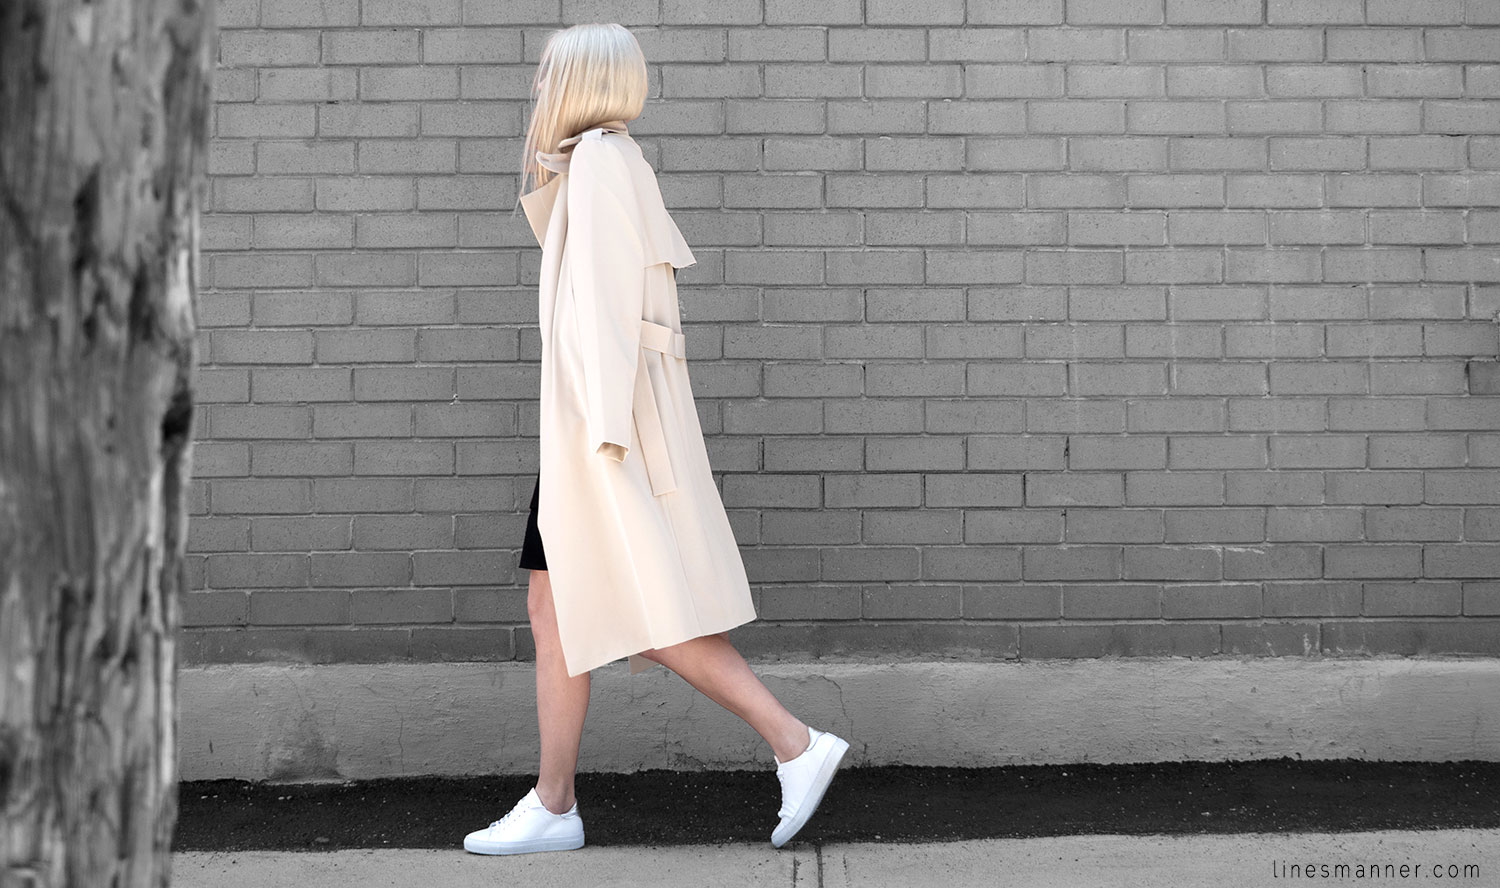 Lines-Manner-Trench-Minimal-Outfits-Fashion-Essentials-Classics-Timeless-Versatile-Details-Hues-Nonchalance-Elegance-Casual-Effortless-12